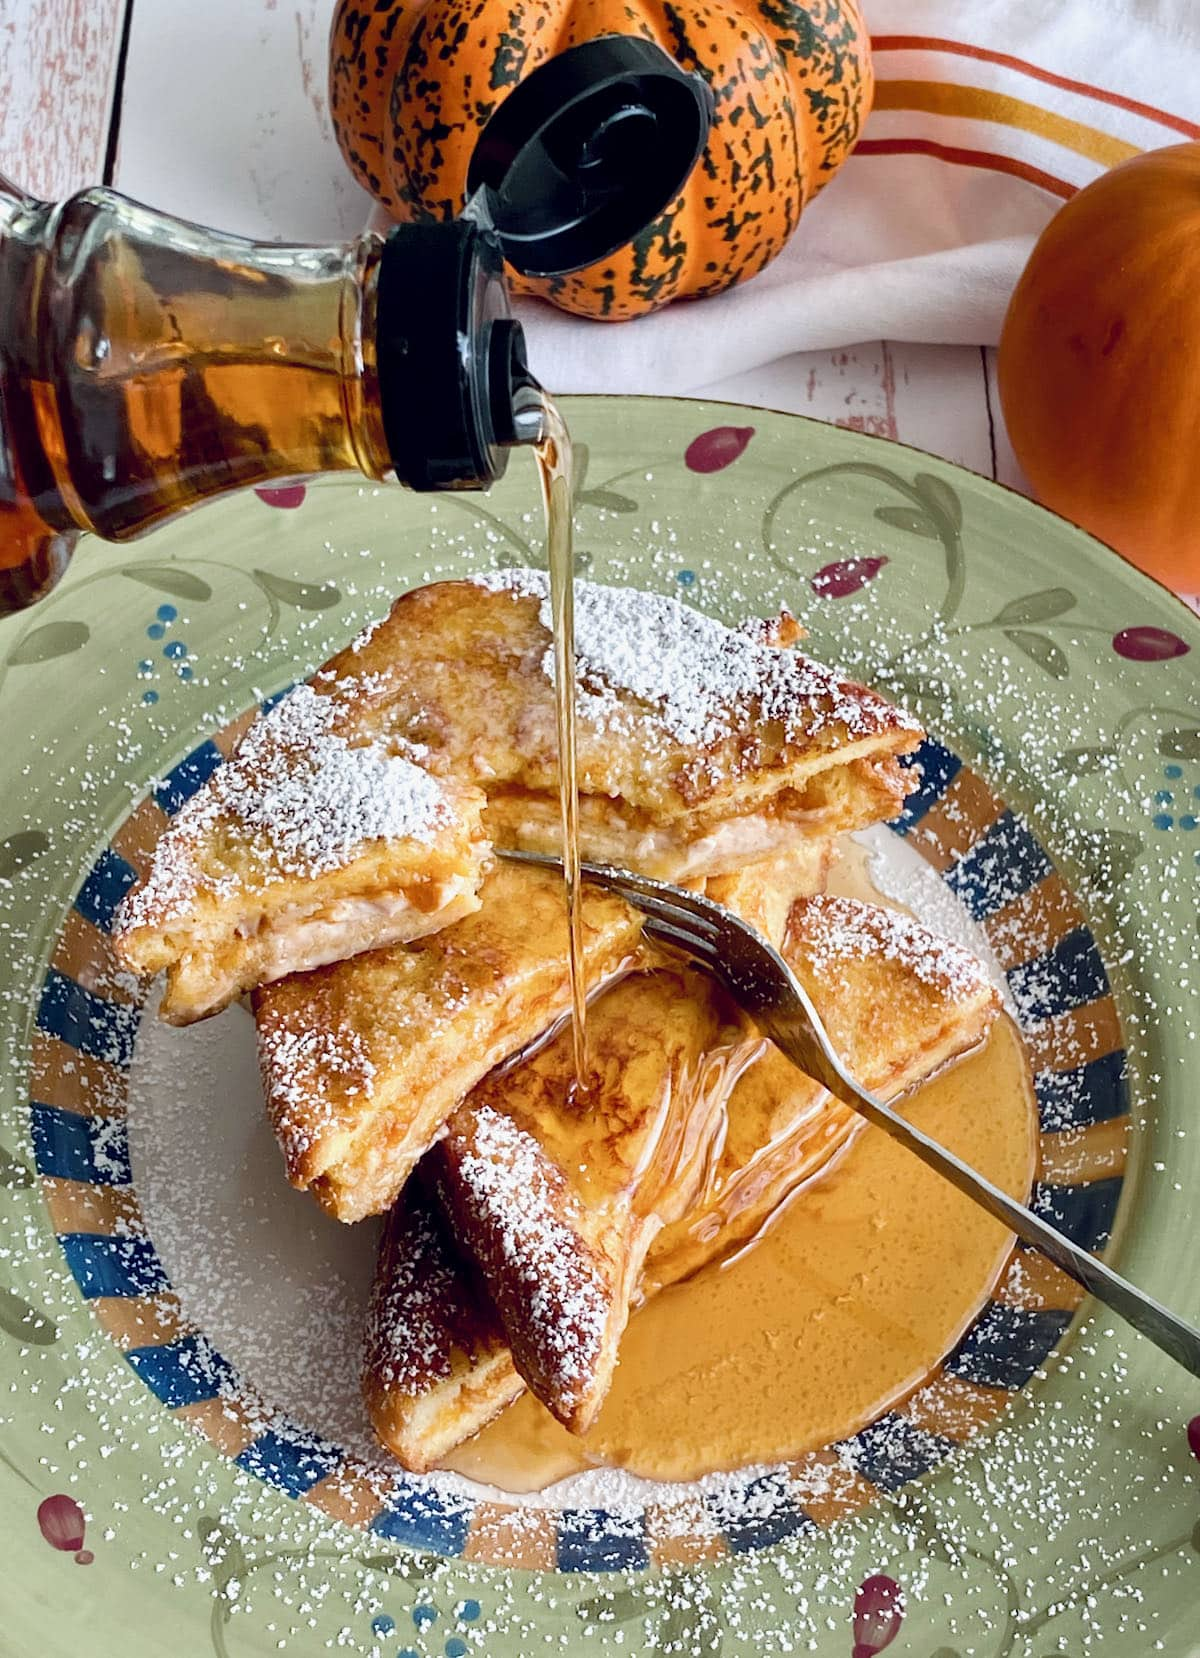 maple syrup being poured over french toast.